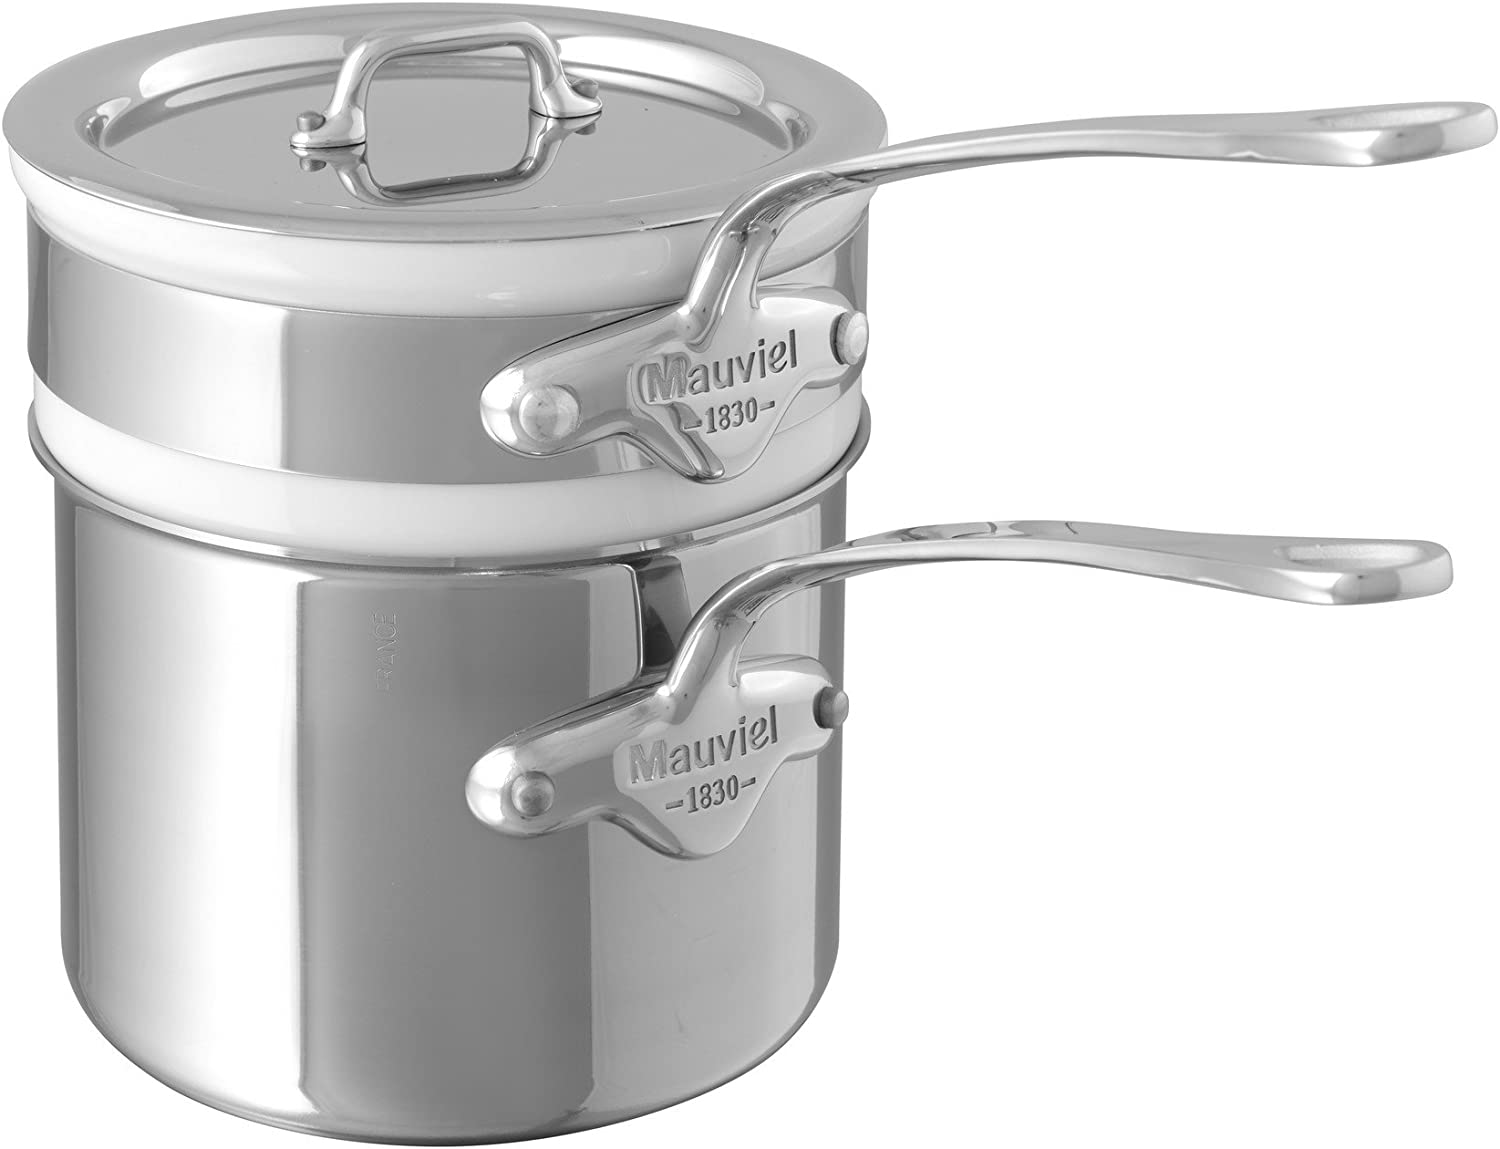 Mauviel Made In France M'Cook 5204.12 0.9 Quart Bain Marie with Lid, Cast Stainless Steel Handle